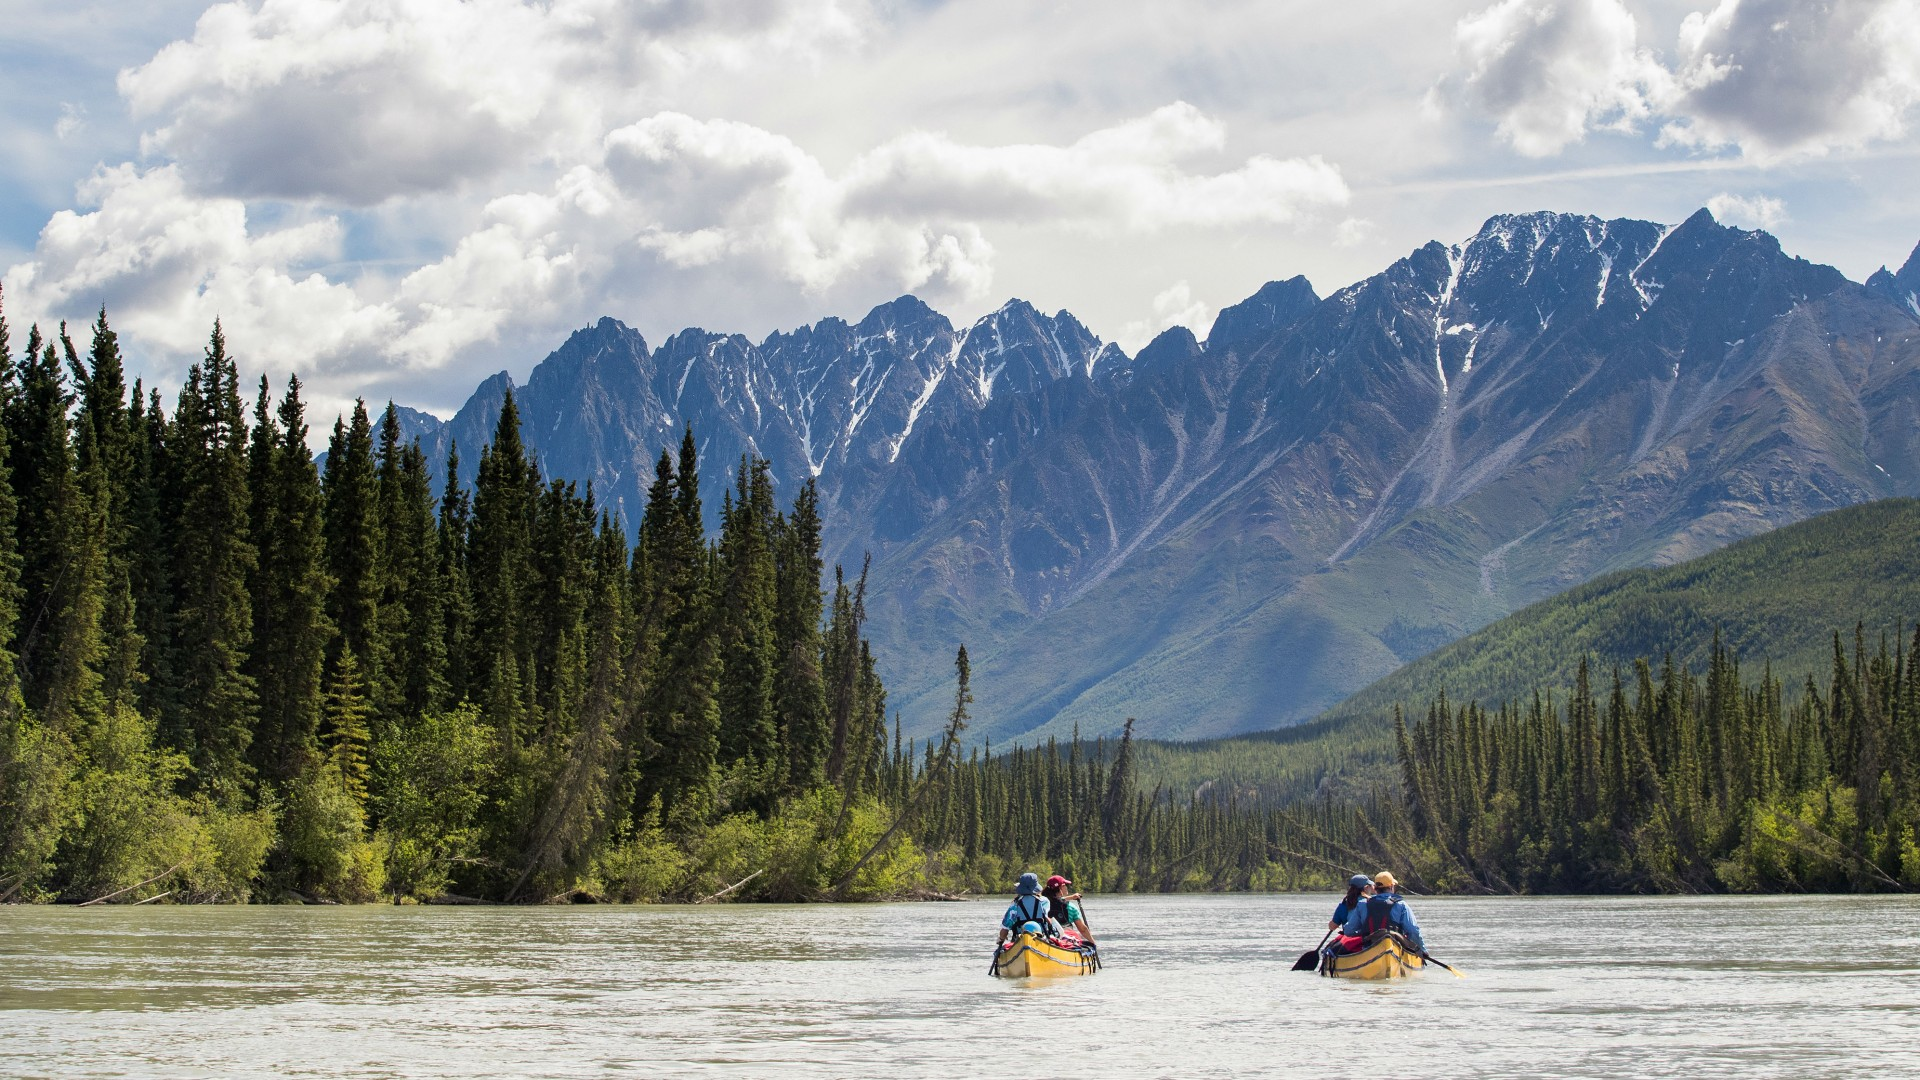 Canoe through canyons on the South Nahanni River